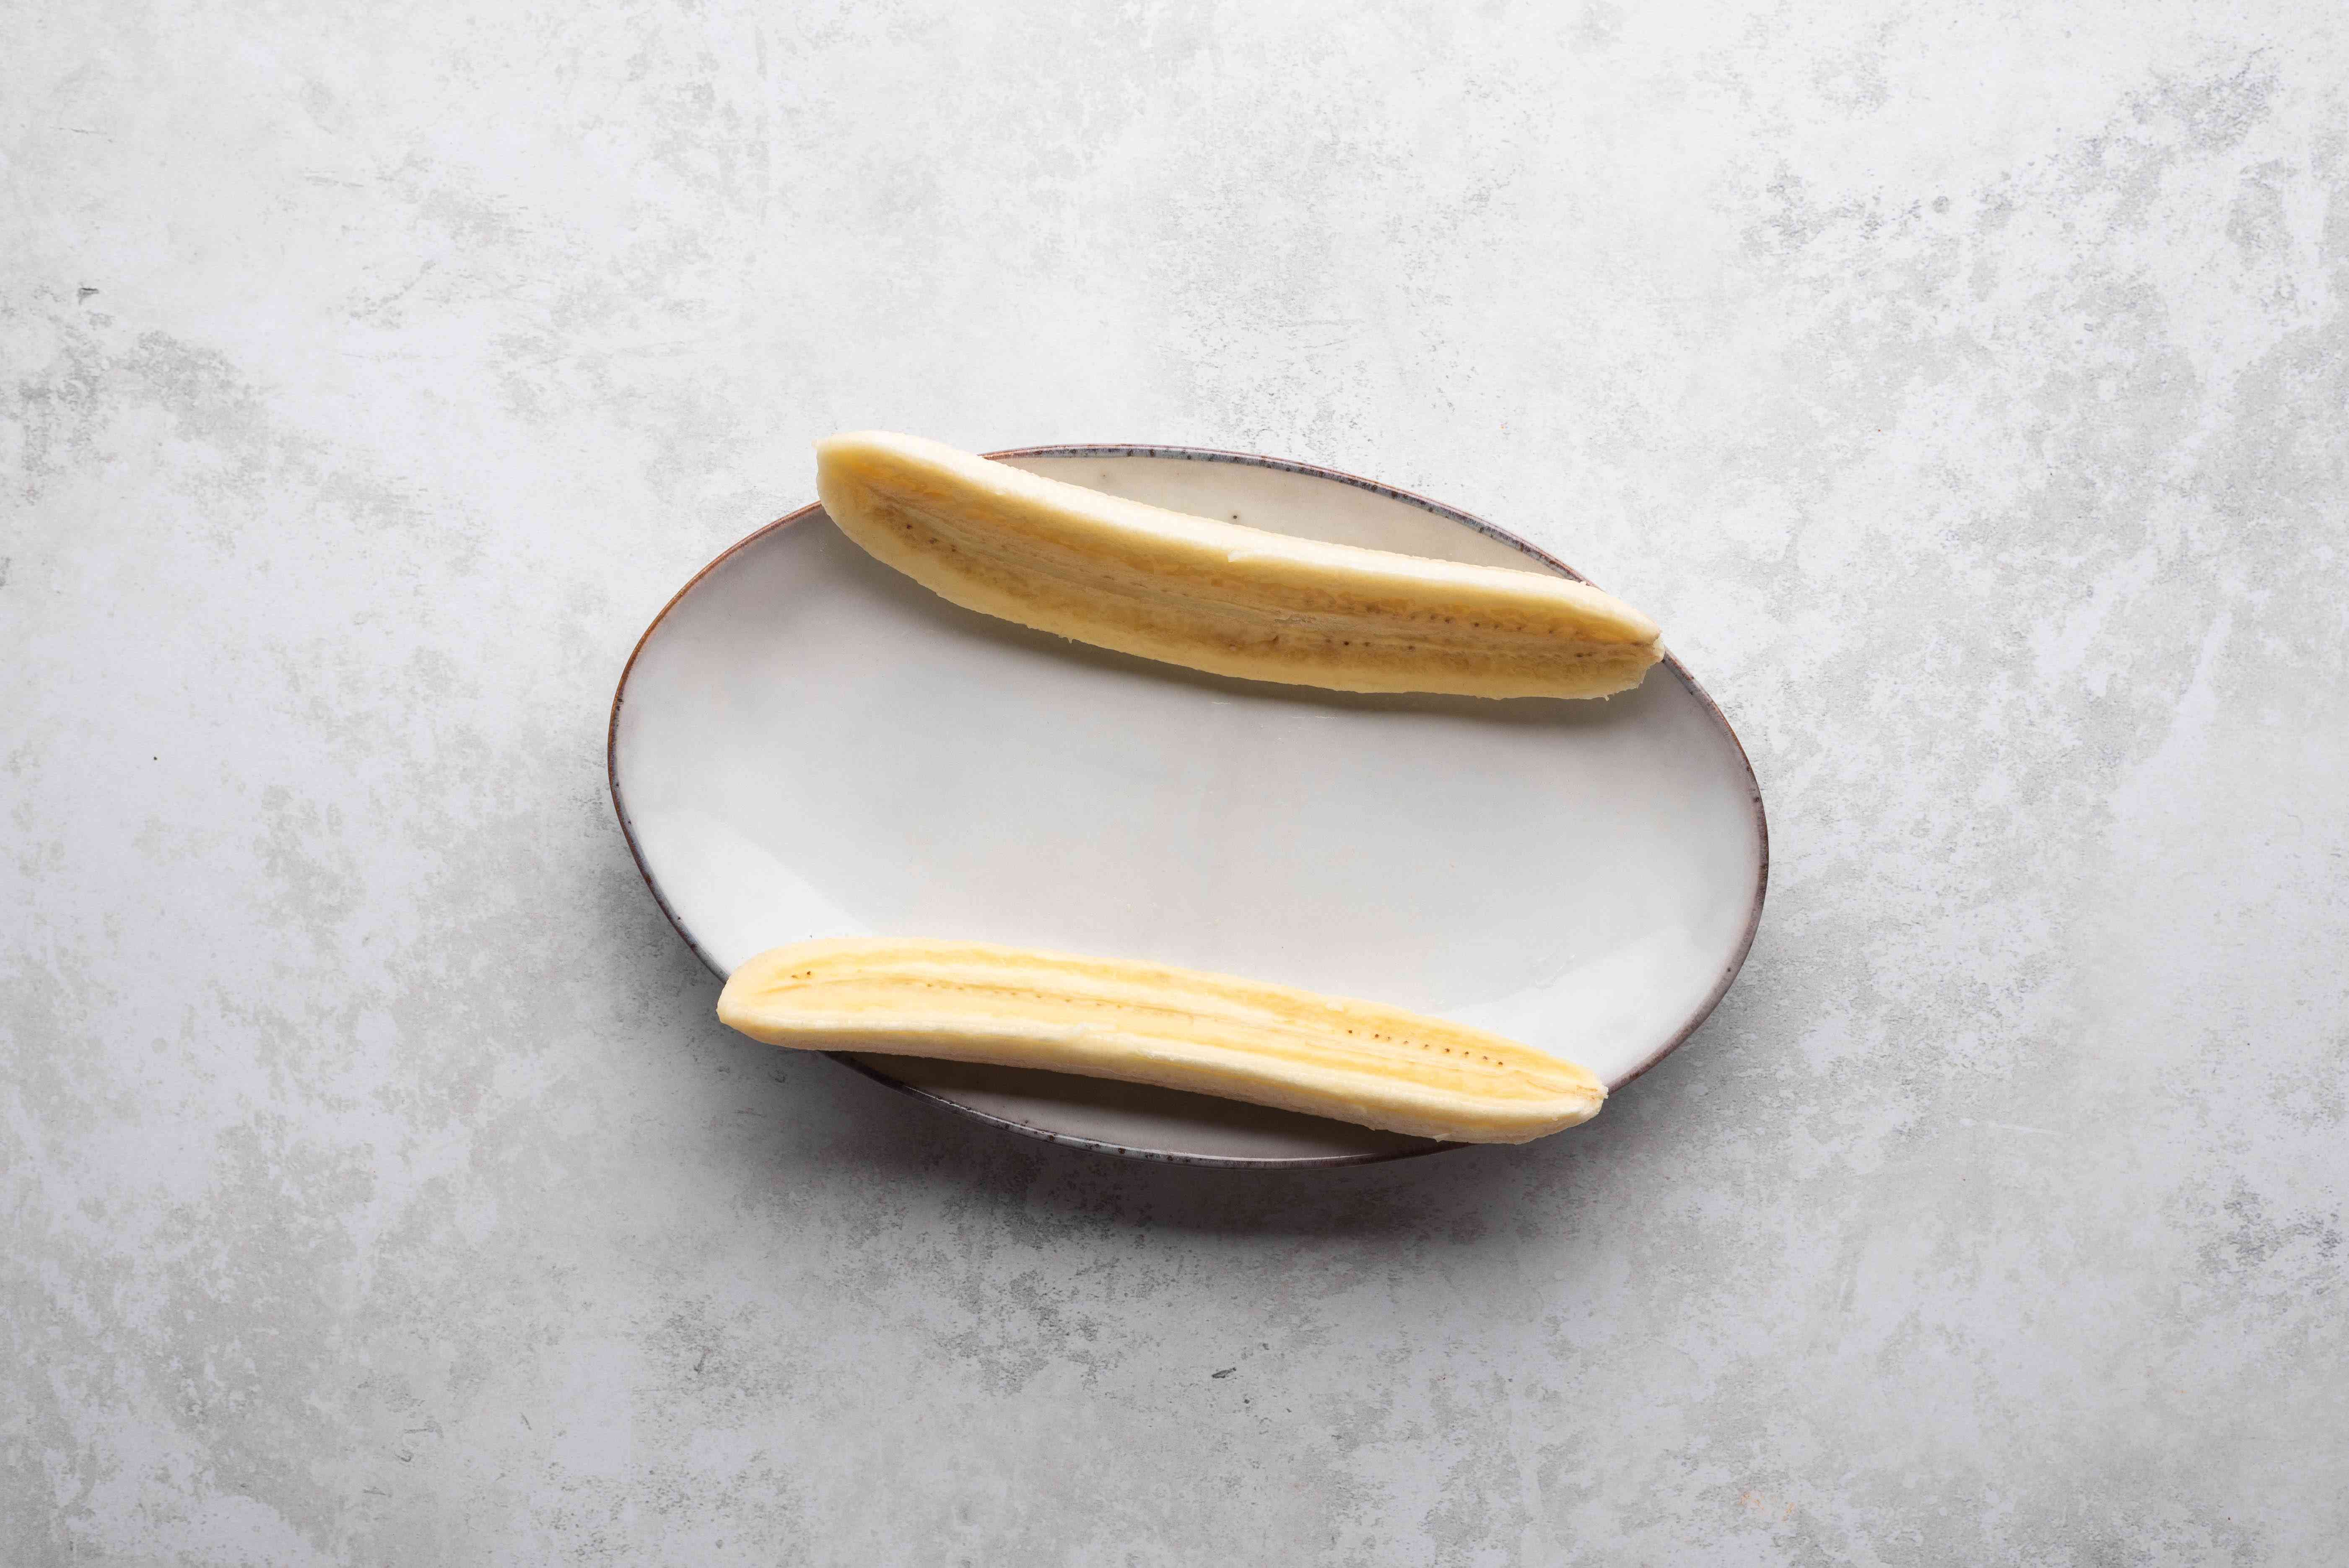 Banana sliced and placed in a narrow dish